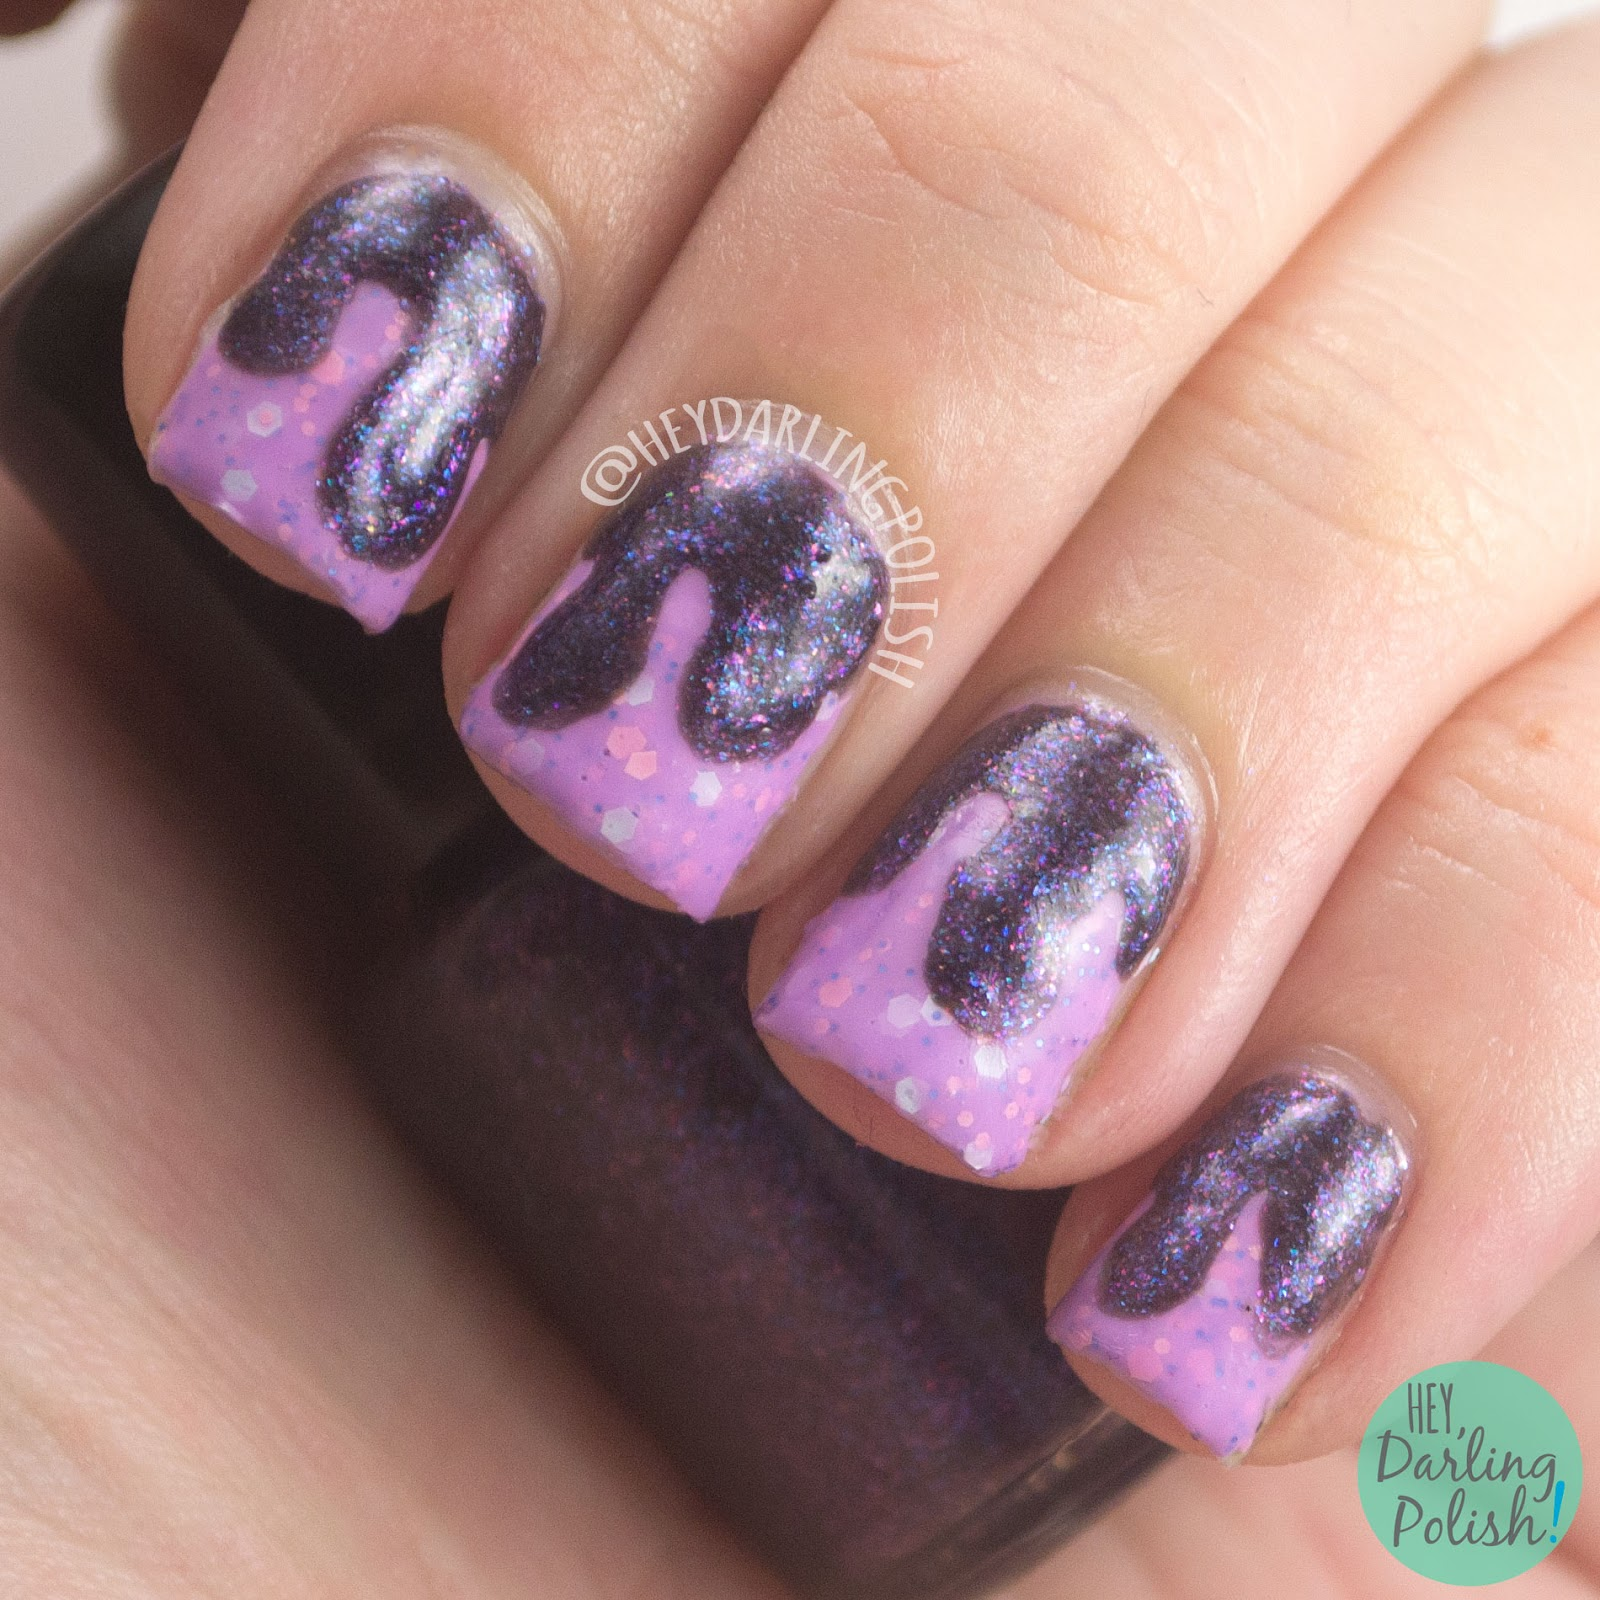 summer fling, dancing in the moonlight, drips, drip nails, nails, nail art, nail polish, indie, indie polish, farewell summer, live life polished, hey darling polish,